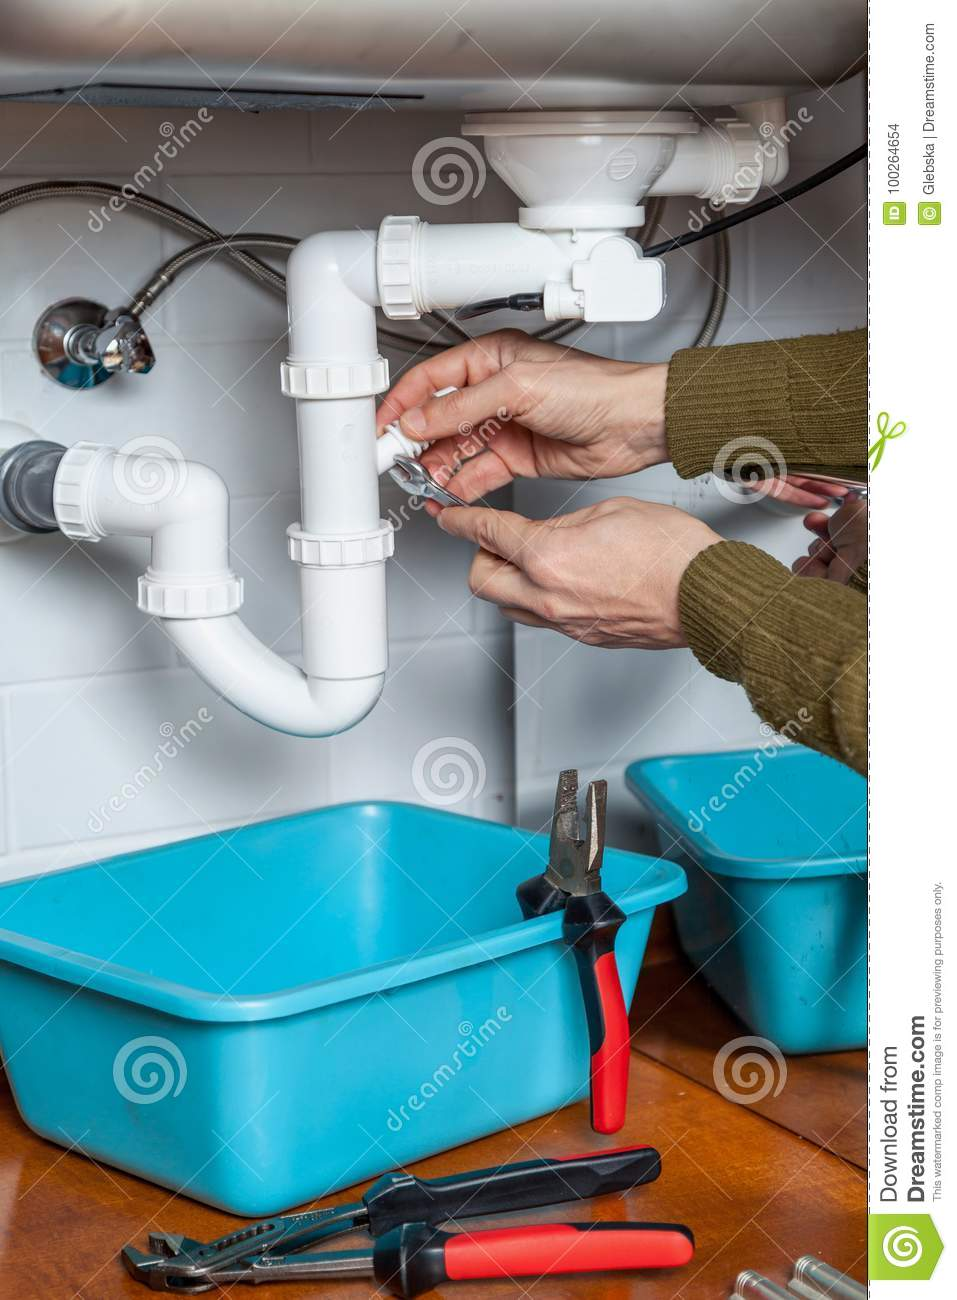 Repair Of Kitchen Weir Wrench Stock Photo - Image of breaking ...